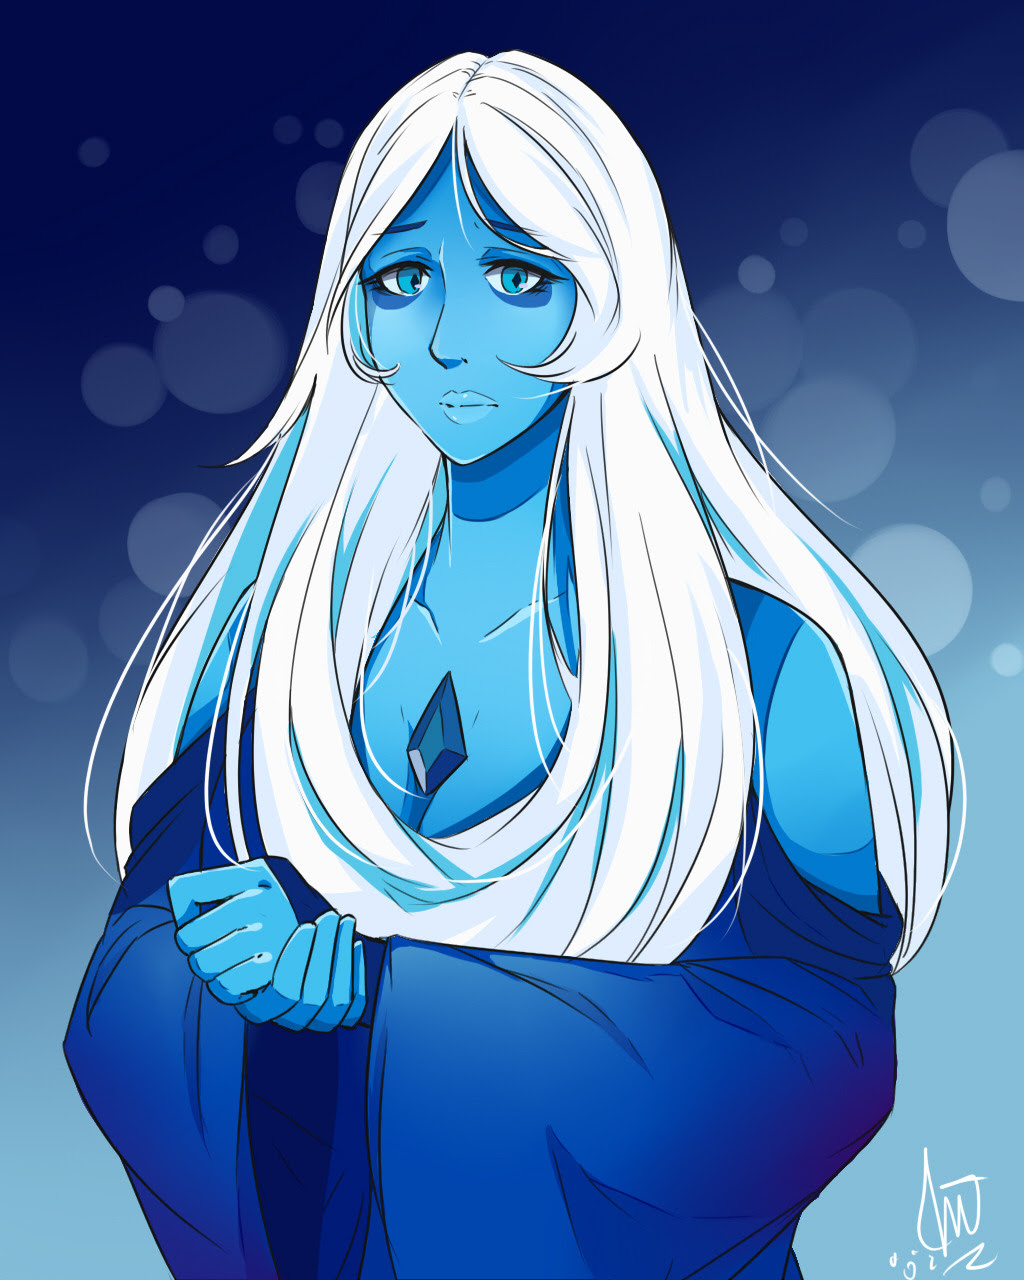 So hyped for the leaks and spoilers of Steven Universe, and I loved Blue Diamond and Yellow Diamond together~~~~